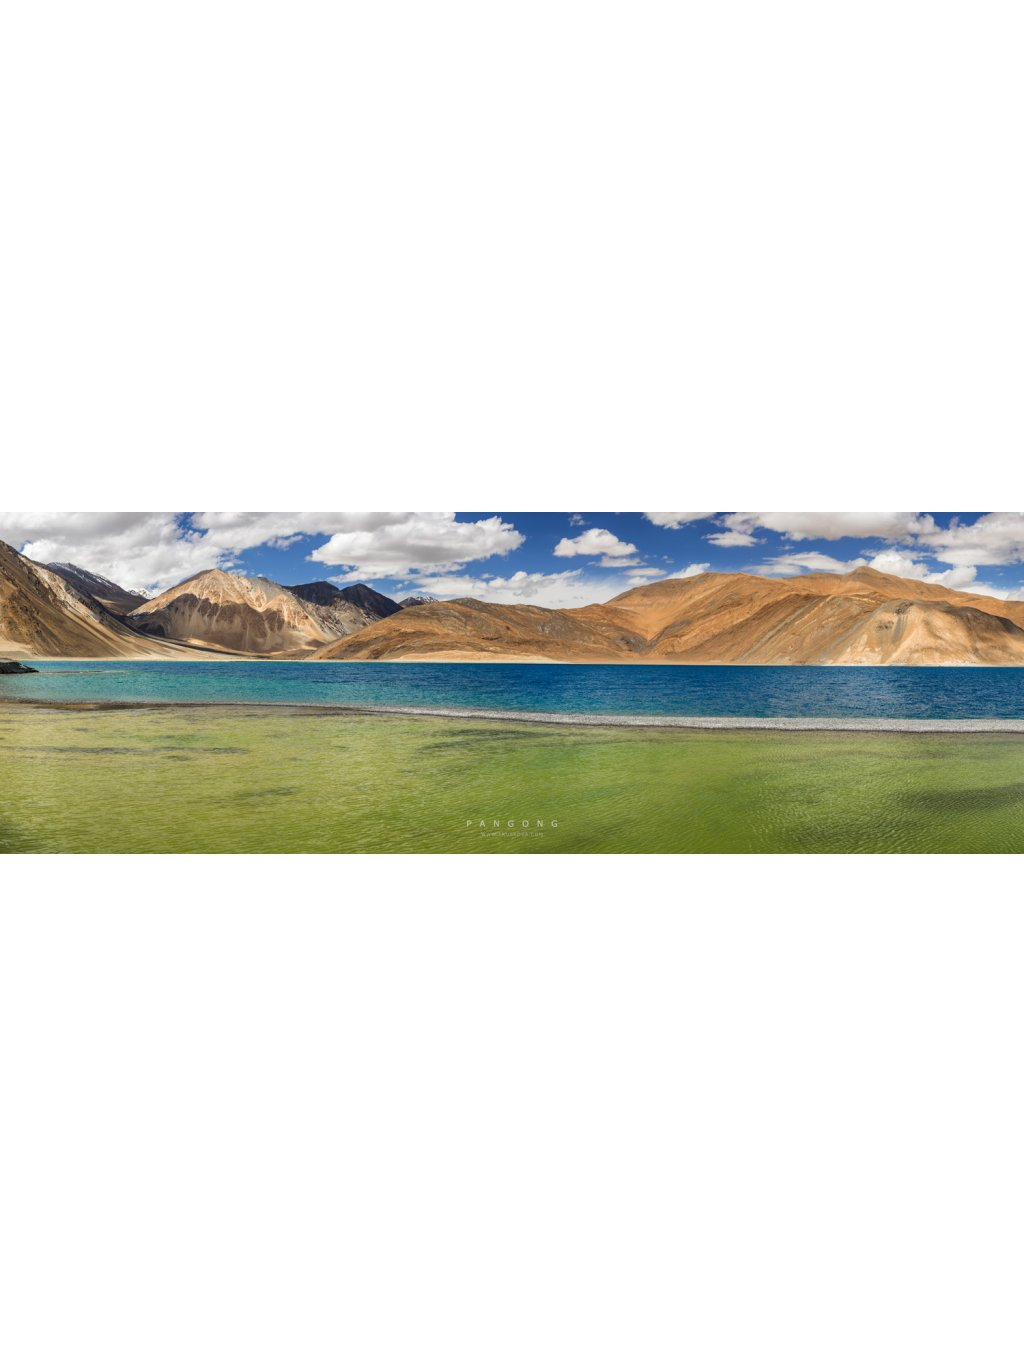 190718 4968 Pangong 8pan 20x60cm sign 1500